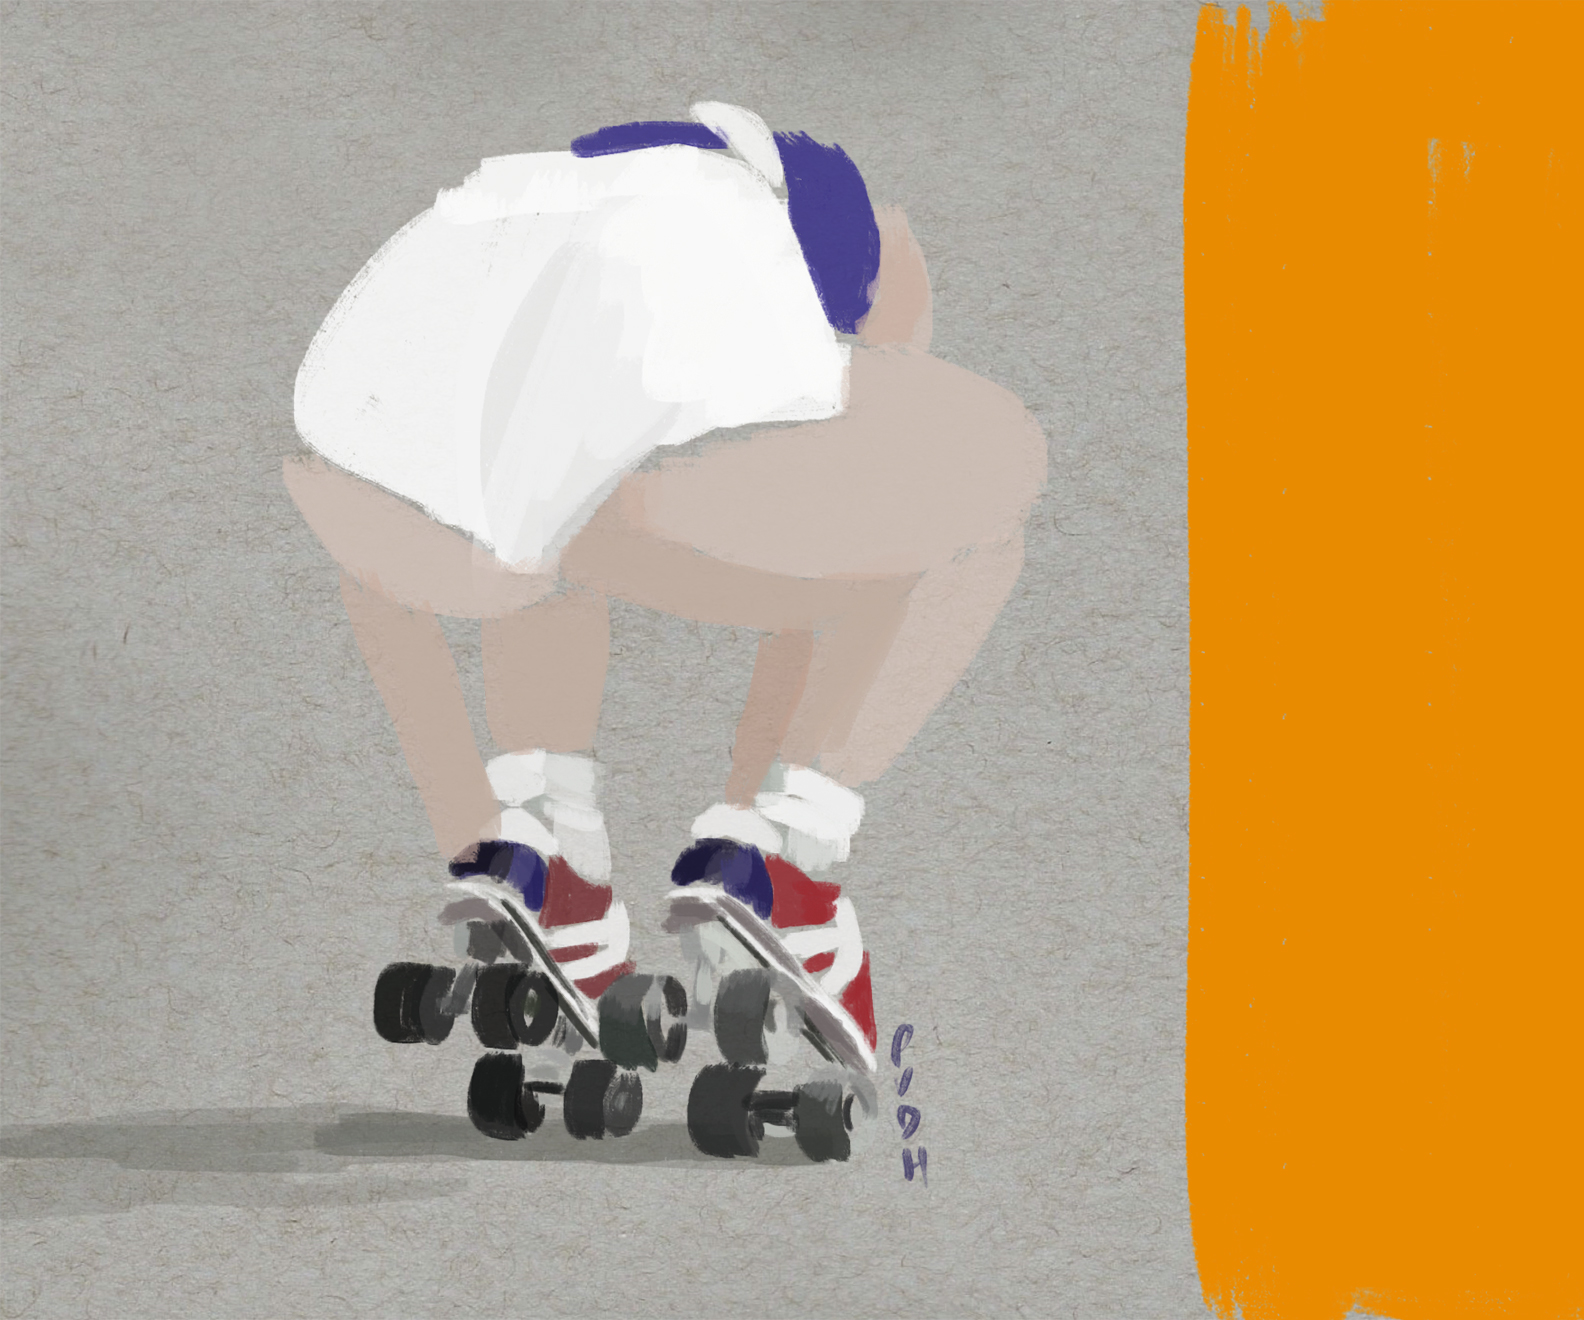 ROLLER-GIRL-ON-HER-MARKS-PAOLA-VAN-DER-HULST